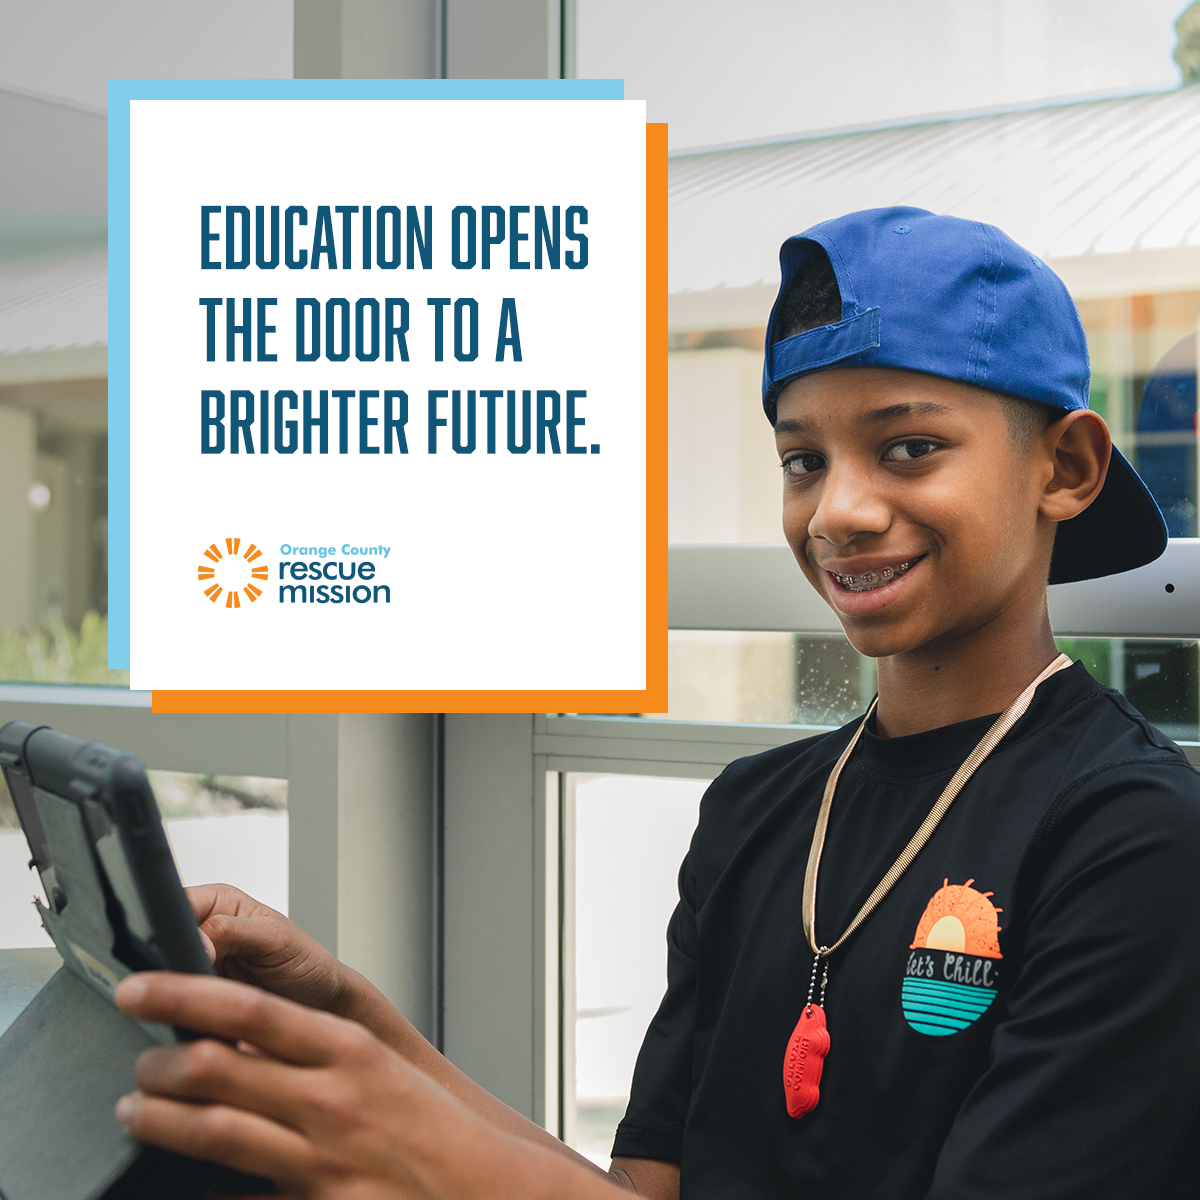 education opens the door to a brighter future donation